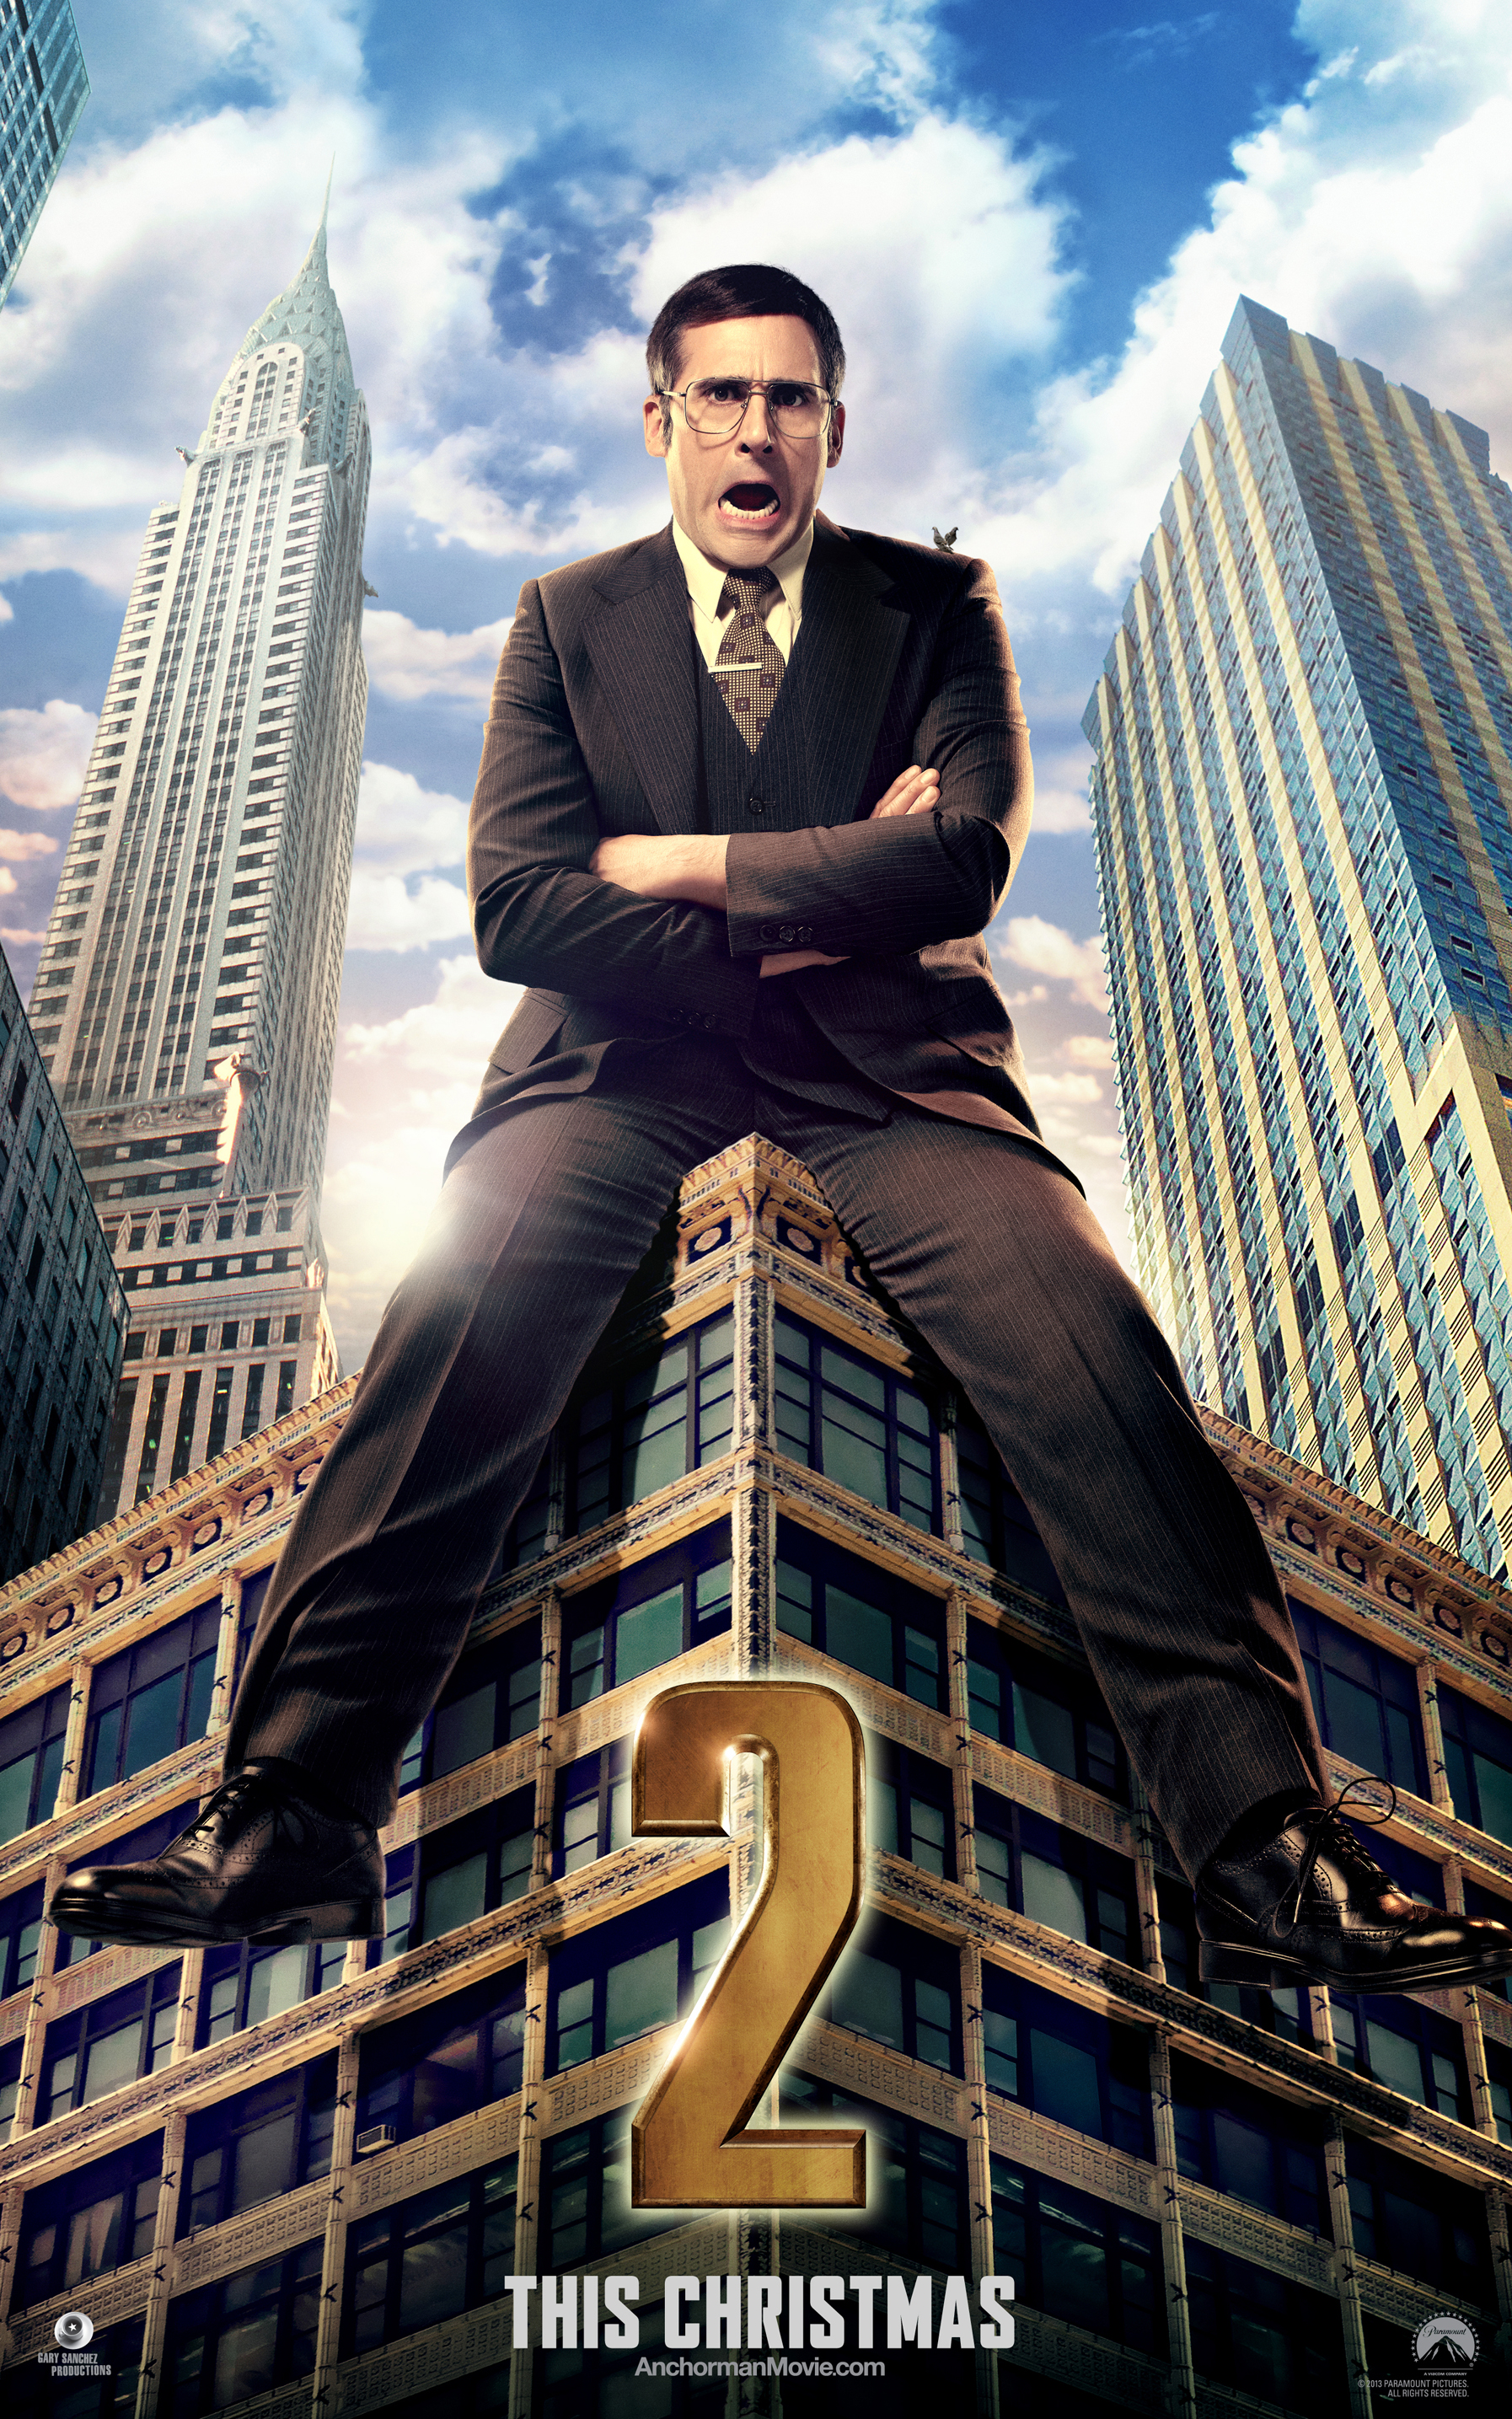 Anchorman 2: The Legend Continues Builds Legacy with Brck Character Poster